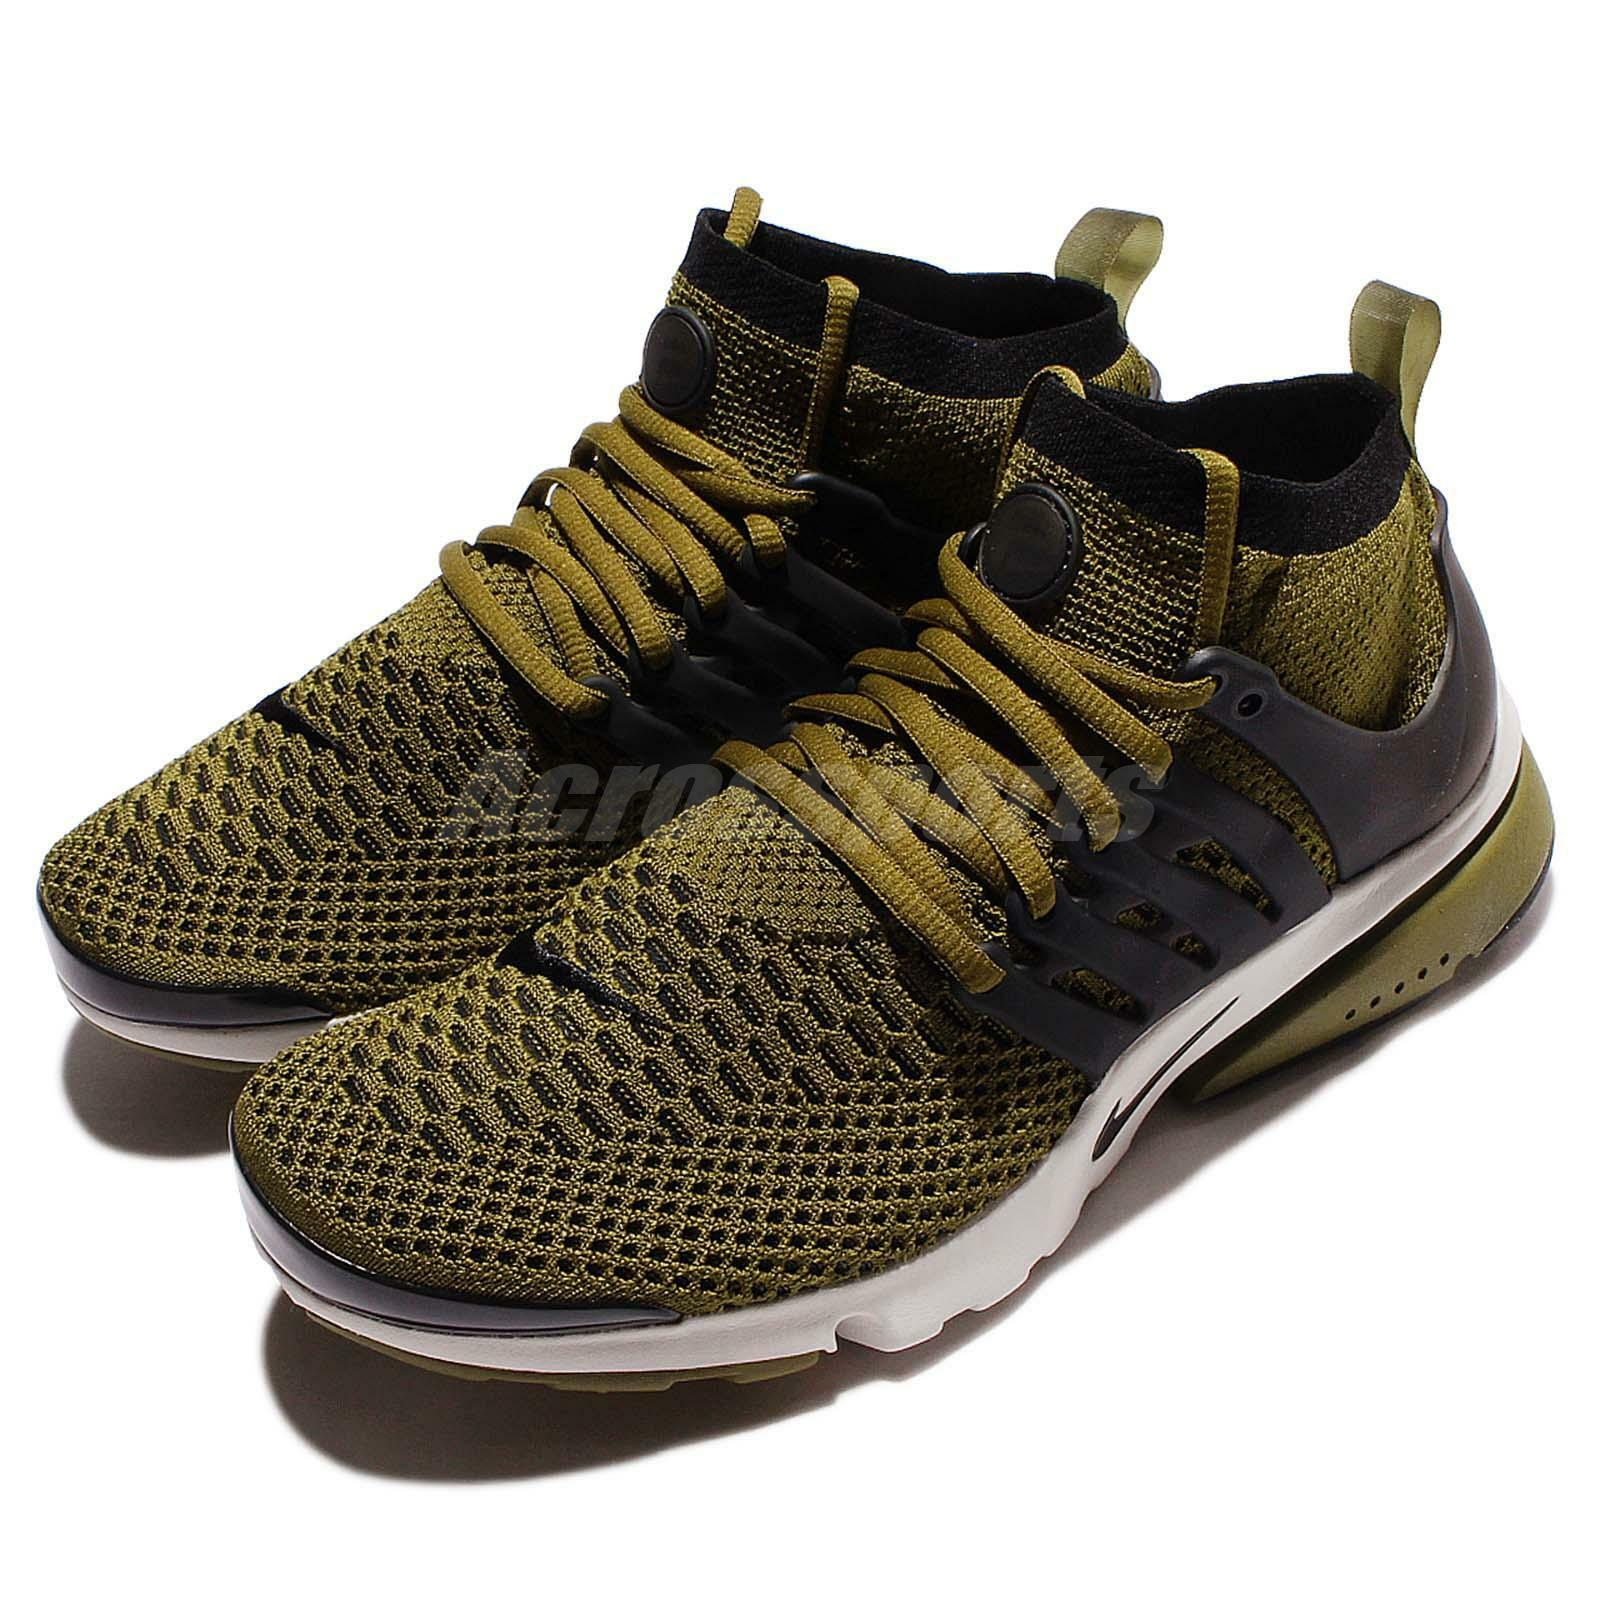 5f0ec5d7b3df0 Nike Air Presto Flyknit Ultra Olive Flak Undefeated Green Men Shoes  835570-300 outlet